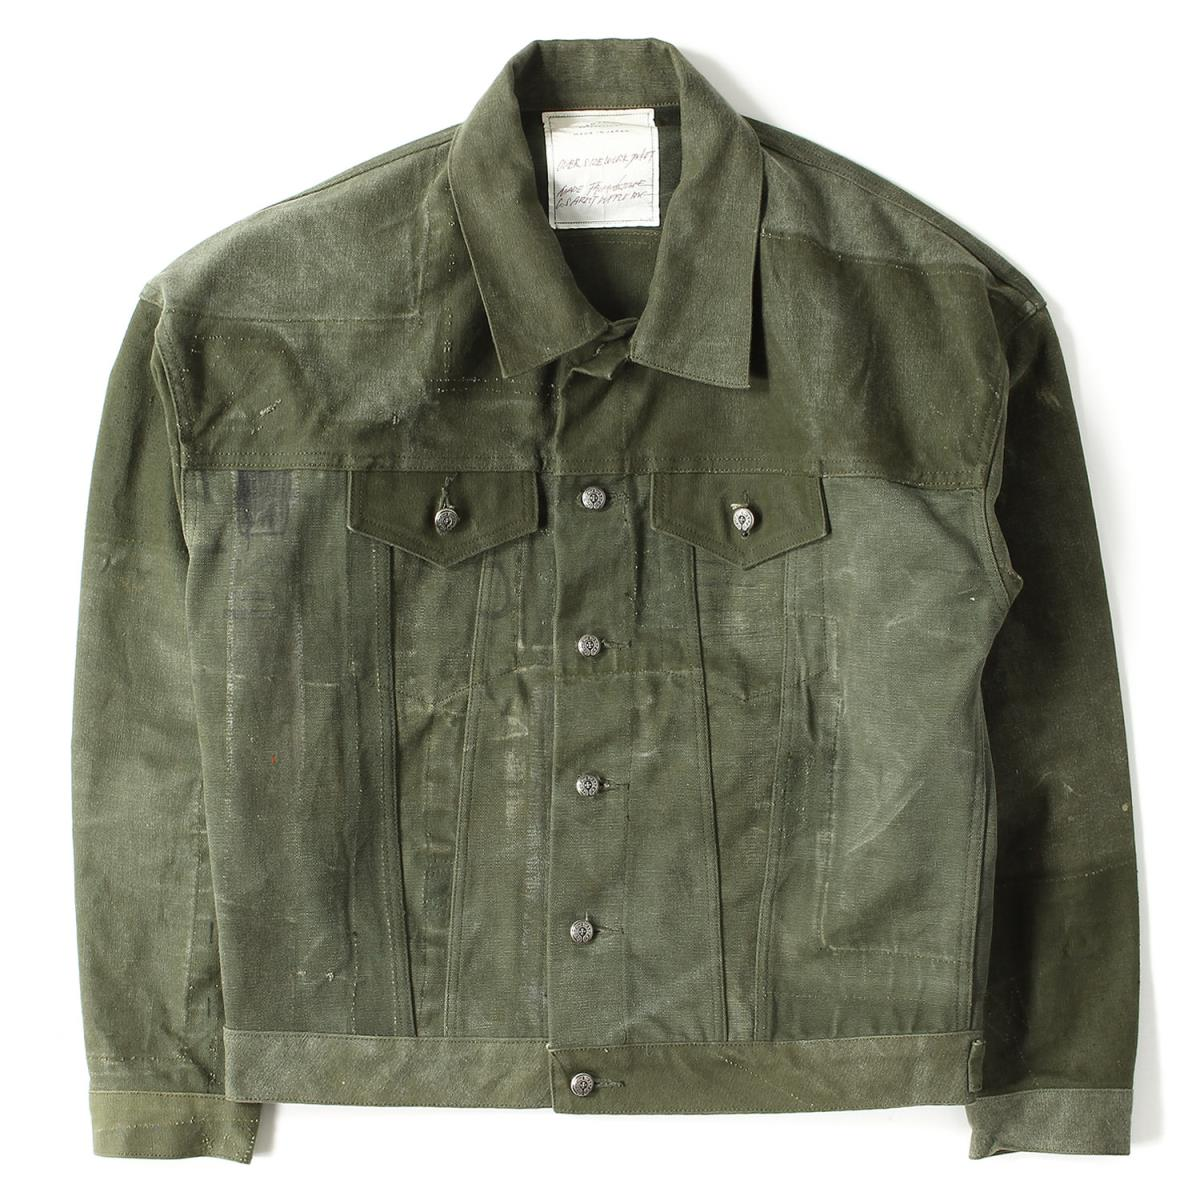 b79b5e0970f CHROME HEARTS (chromic Hertz) X READYMADE military rebuilding over size  work jacket (OVER SIZE WORK JACKT) beauty article green 1